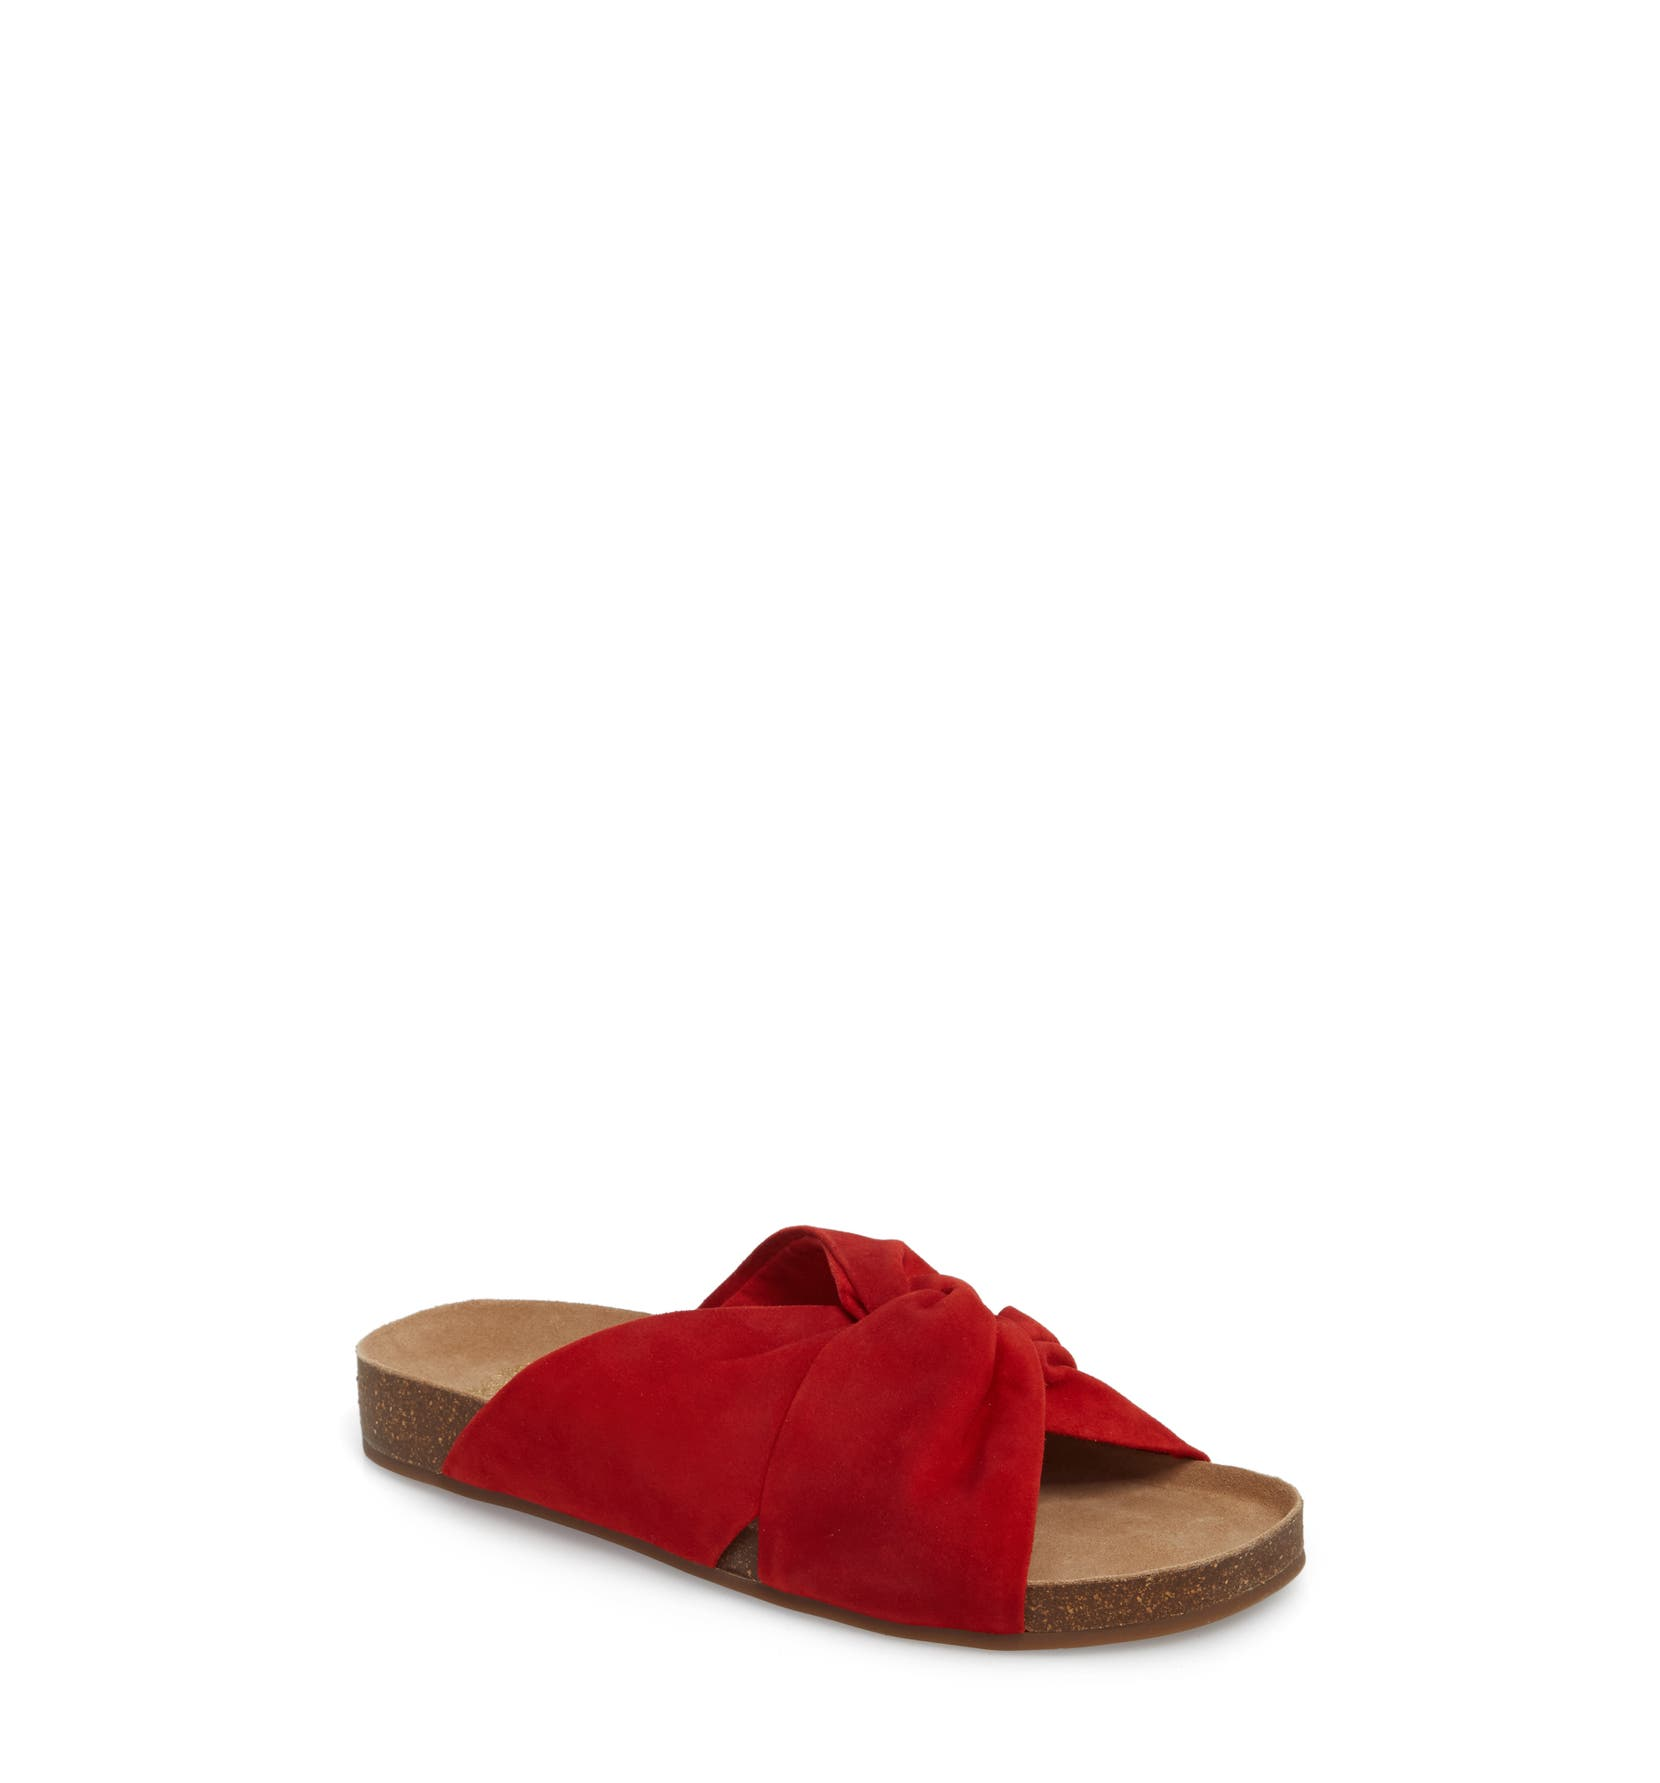 Biminti Slide Sandal,                         Main,                         color, Red Hot Rio